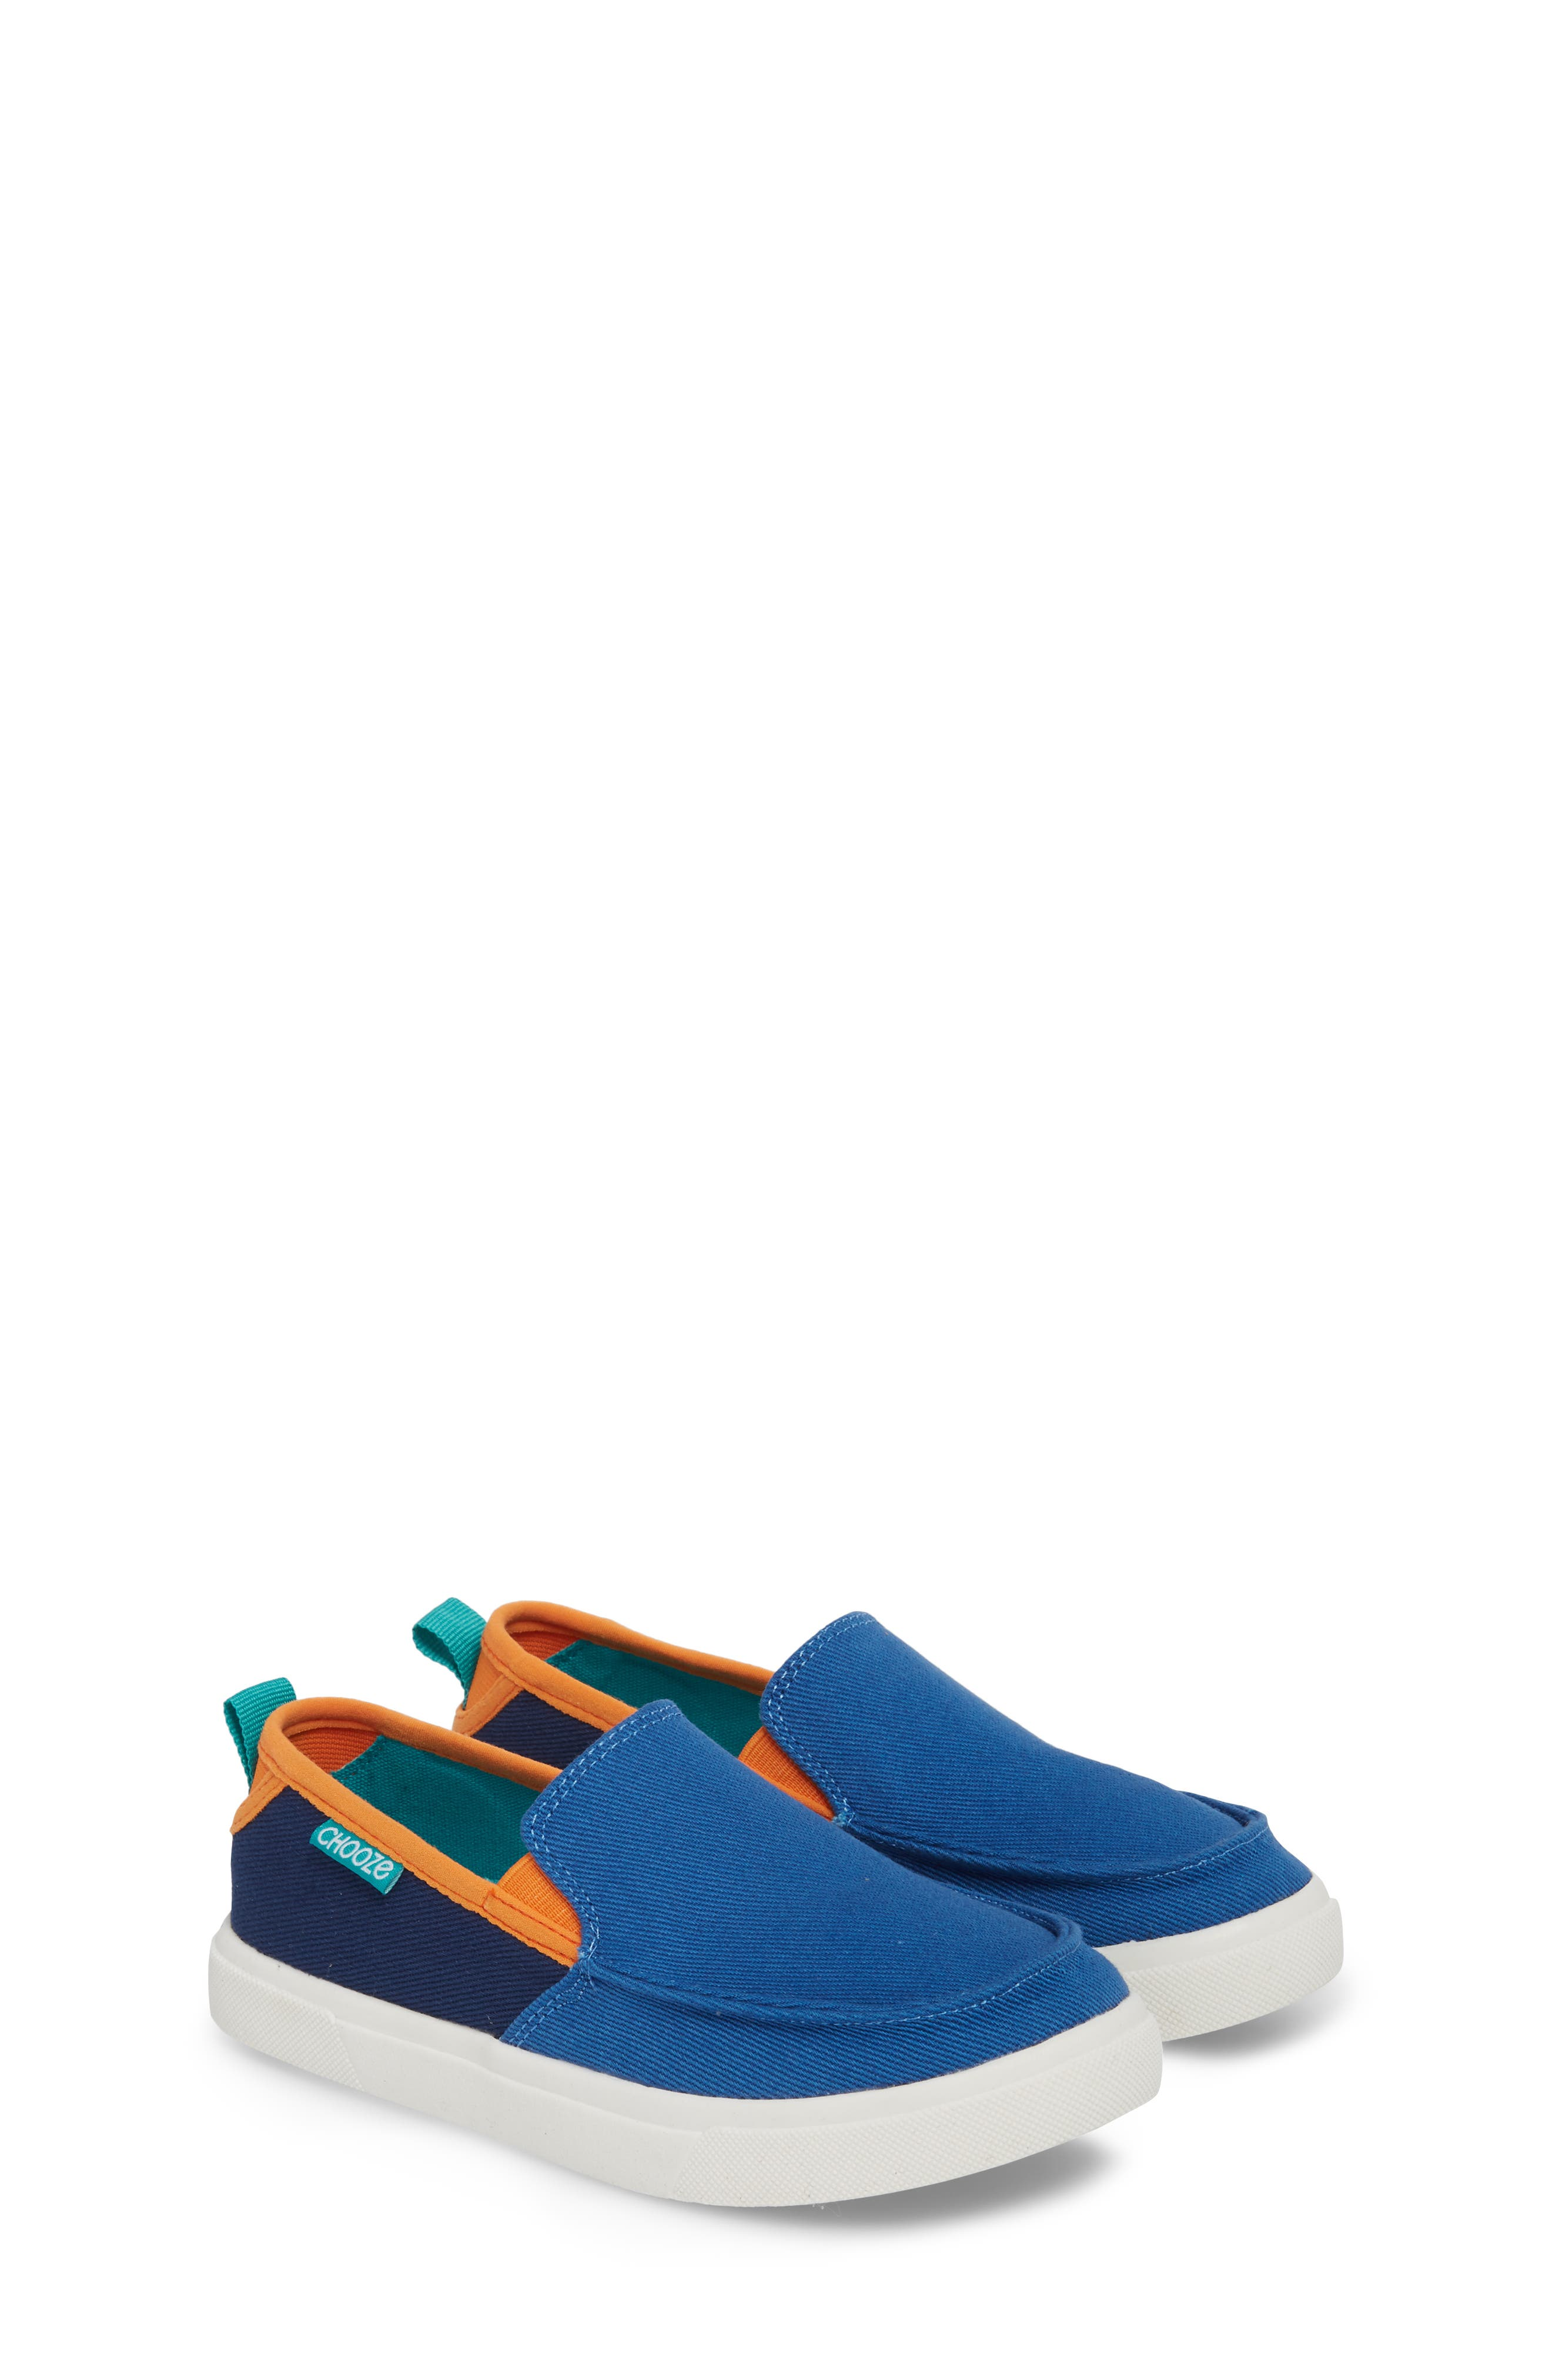 CHOOZE Roam Slip-On Sneaker (Walker, Toddler, Little Kid & Big Kid)